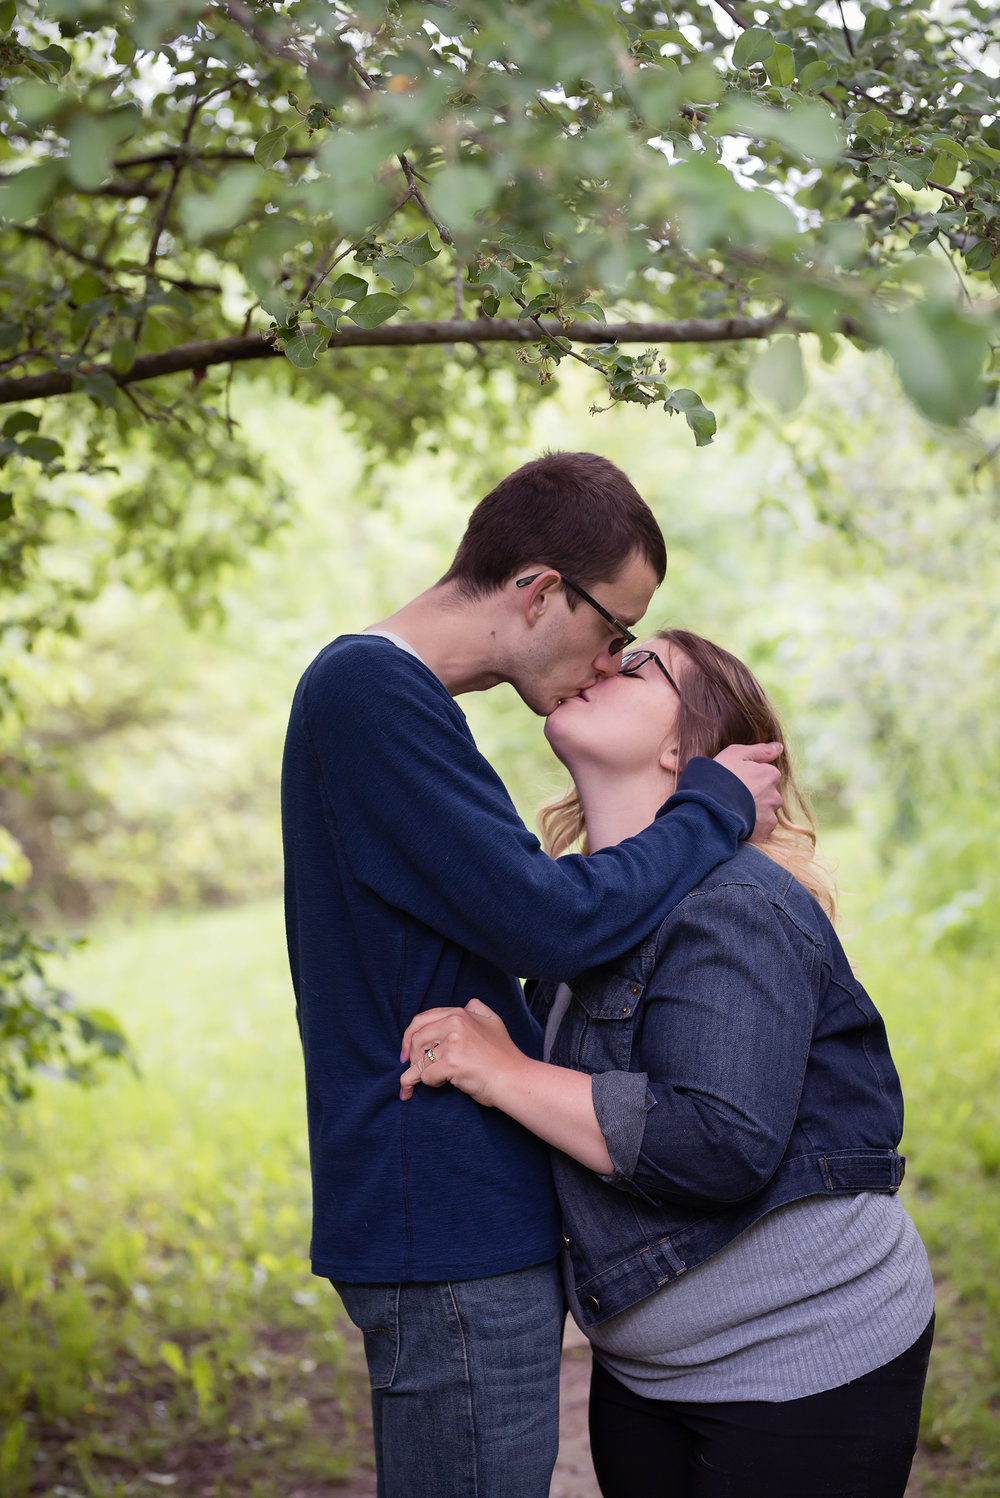 Couples255NaomiLuciennePhotography062018-2-Edit.jpg